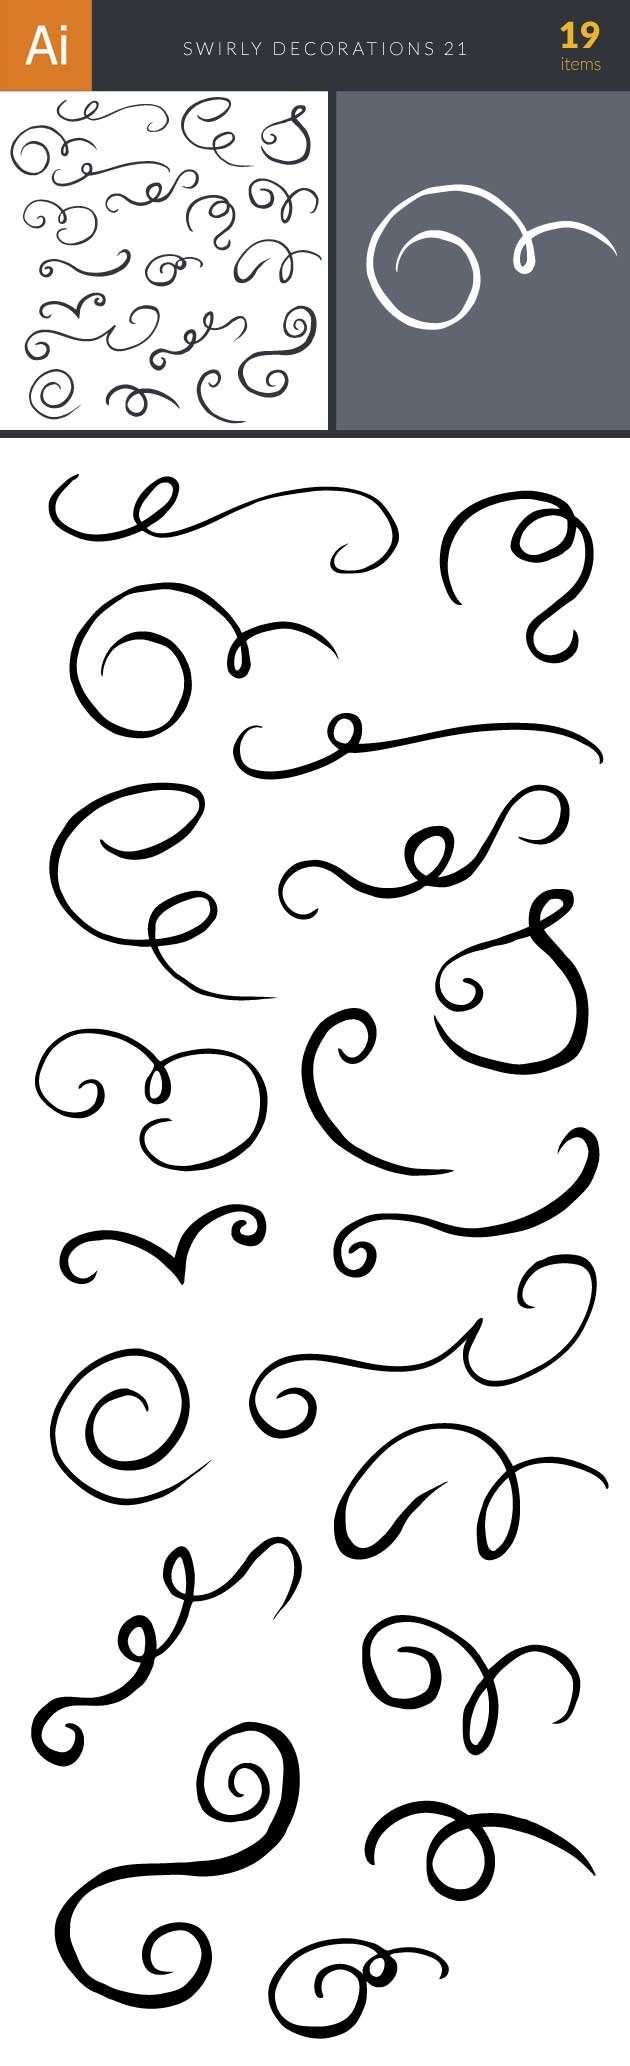 Swirly Decorations For Frames Set 21 2